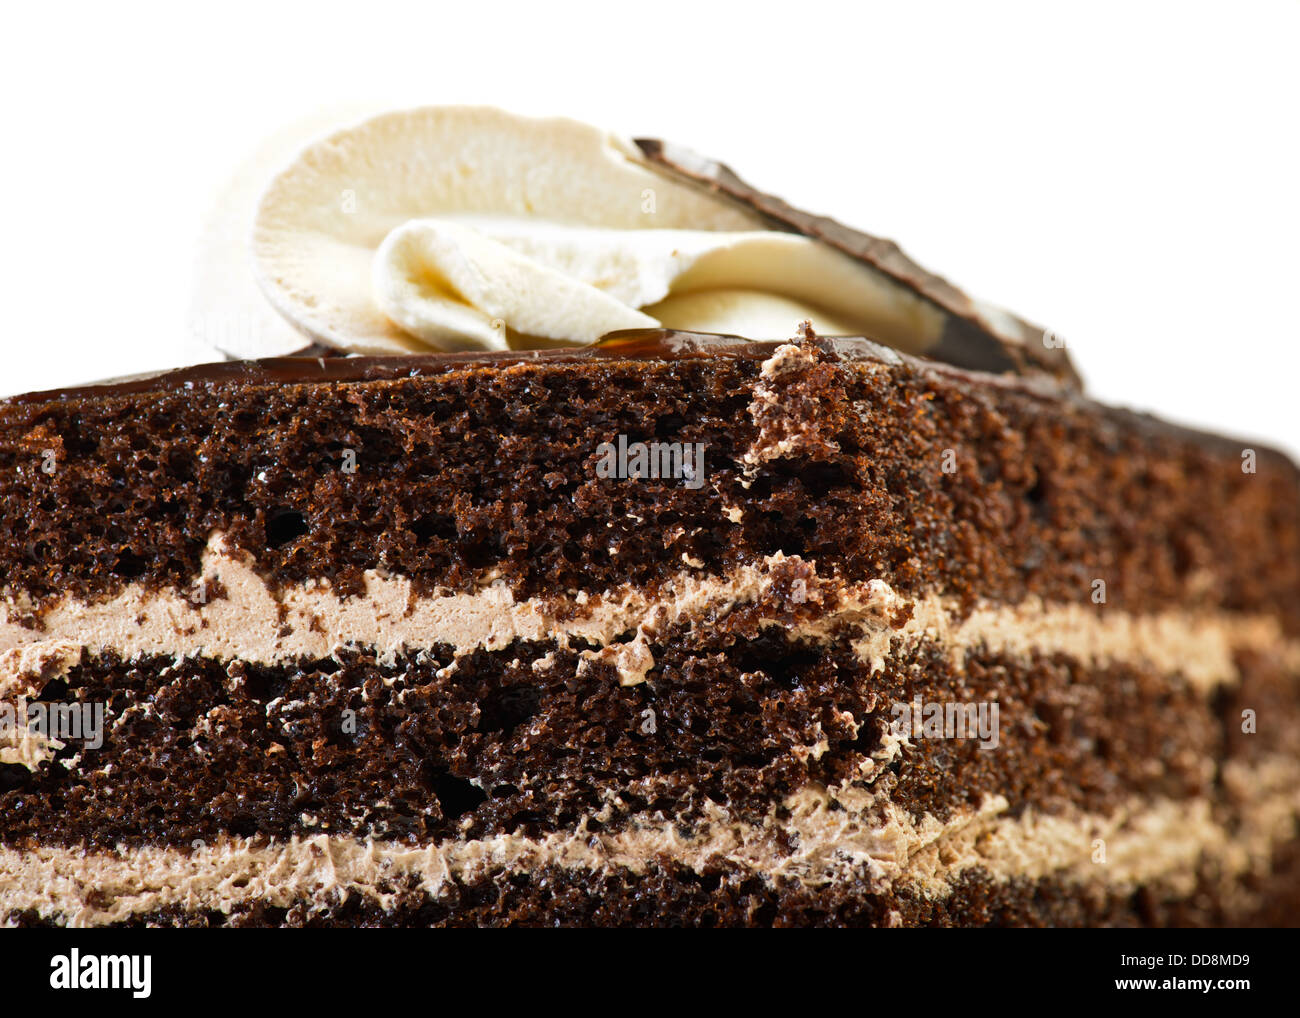 Chocolate Cake isolated over white - Stock Image